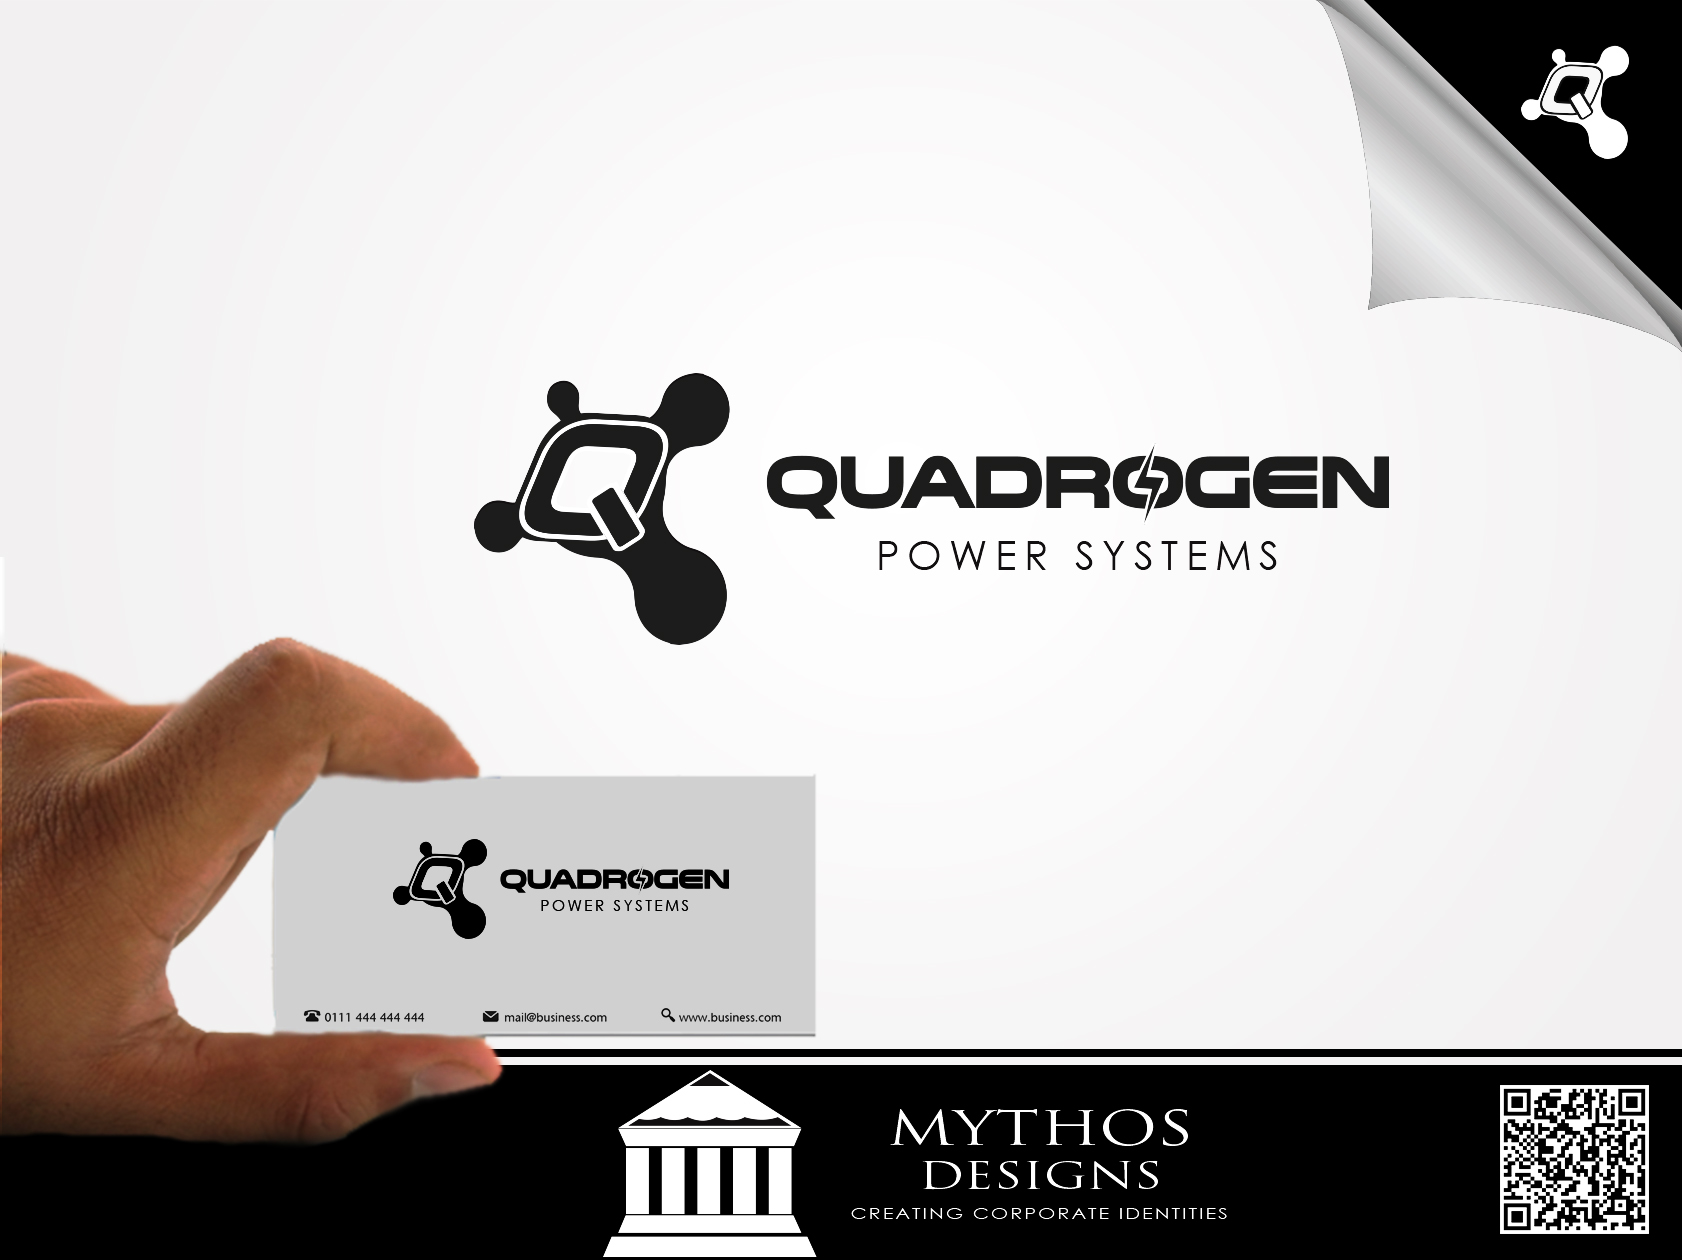 Logo Design by Mythos Designs - Entry No. 130 in the Logo Design Contest New Logo Design for Quadrogen Power Systems, Inc.